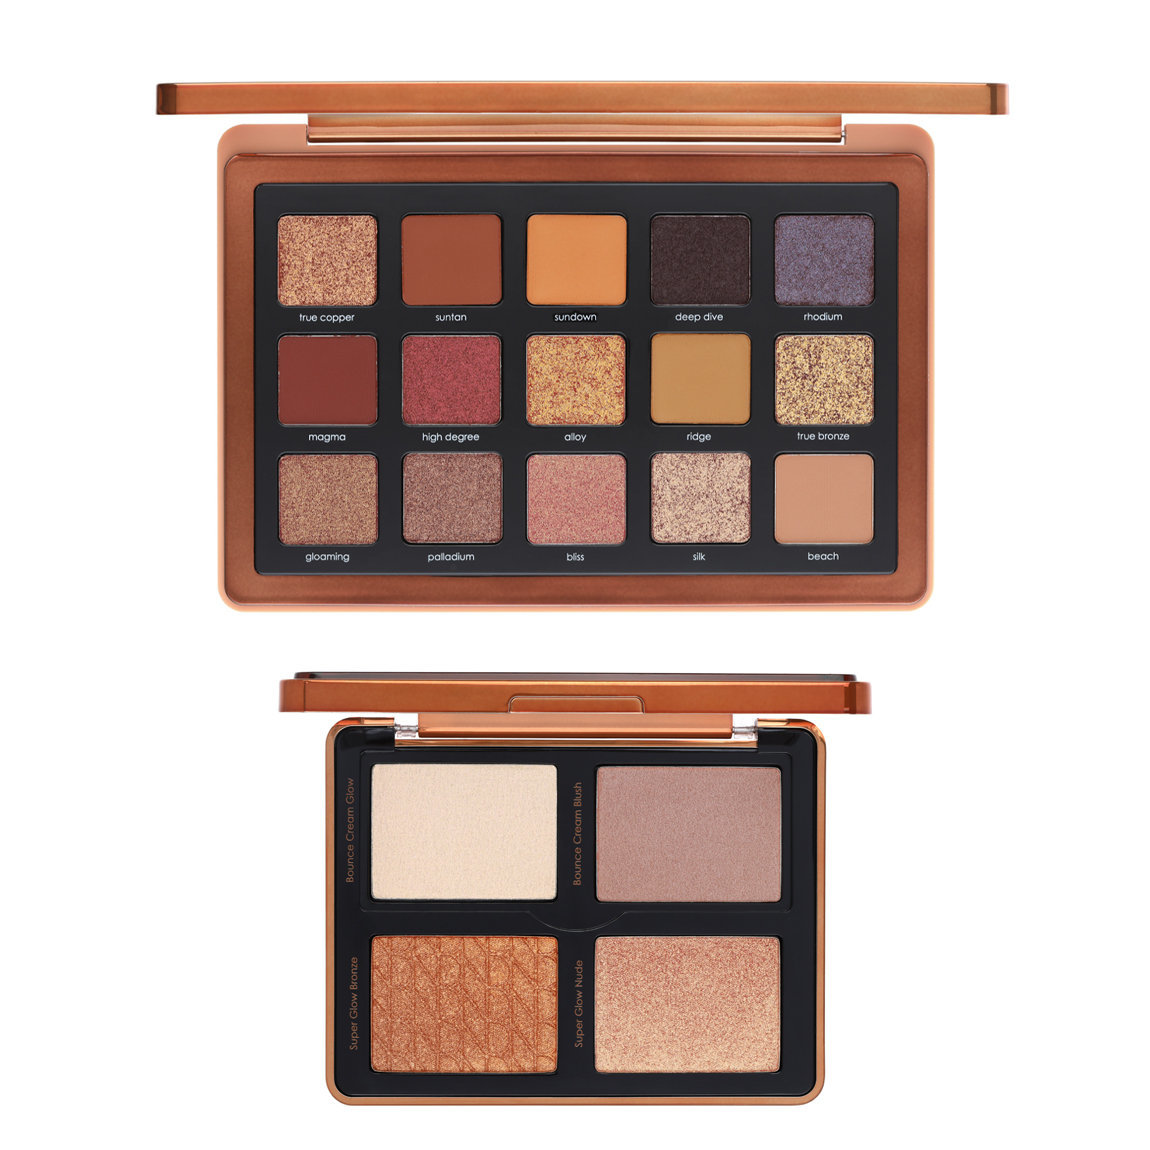 Natasha Denona Bronze Palette + Bronze Cheek Face Glow Palette Bundle alternative view 1 - product swatch.